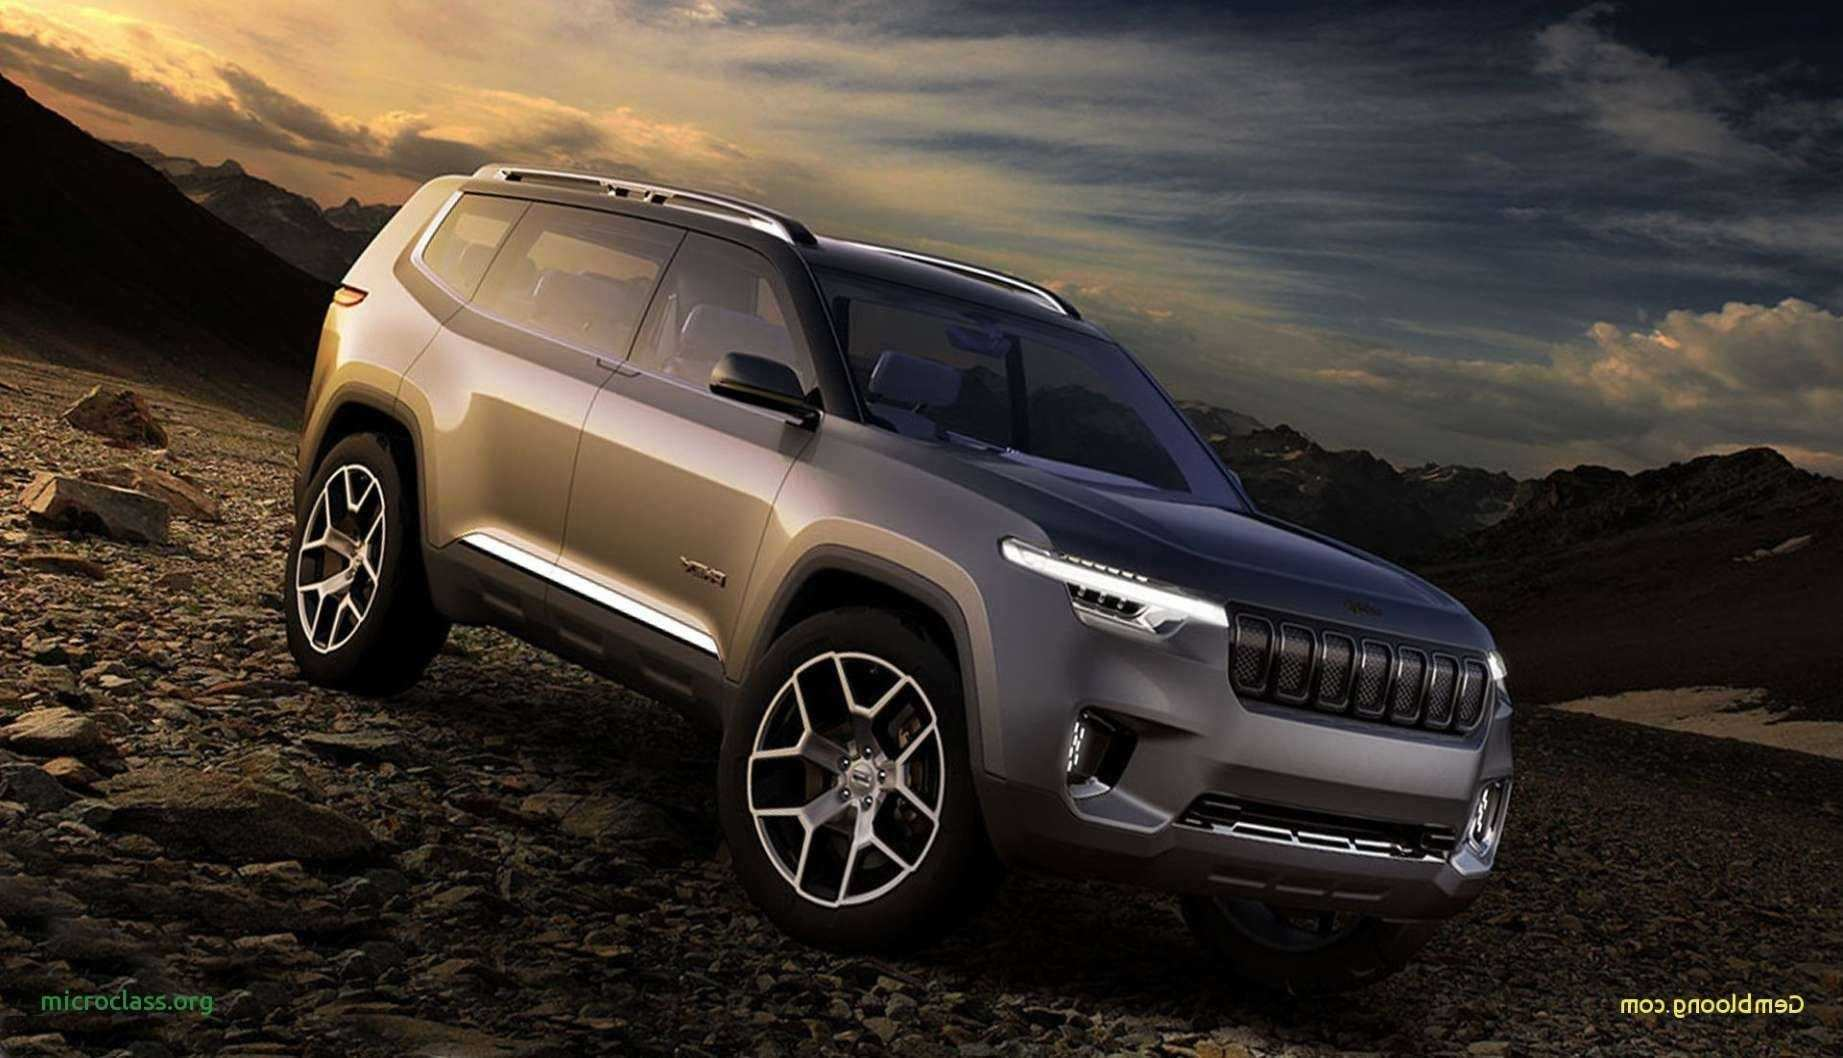 19 Gallery of Jeep Srt 2020 Pictures with Jeep Srt 2020